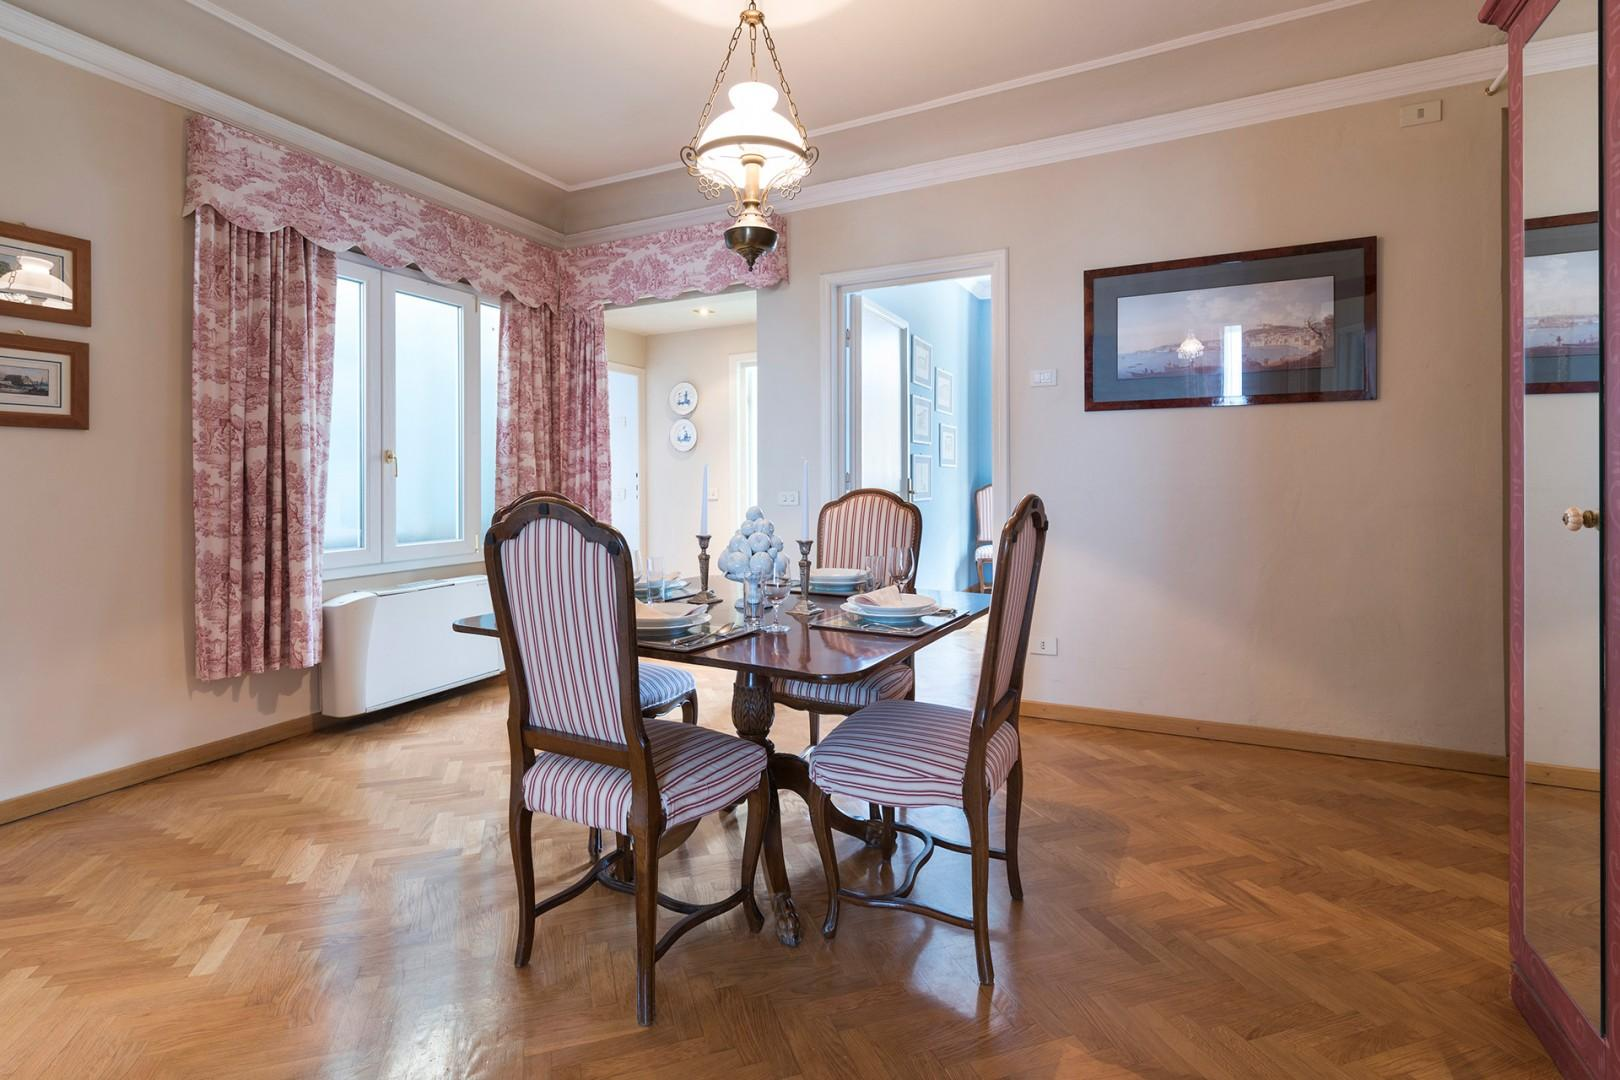 Dining room is at the center of the apartment, with easy access to the living room and kitchen.